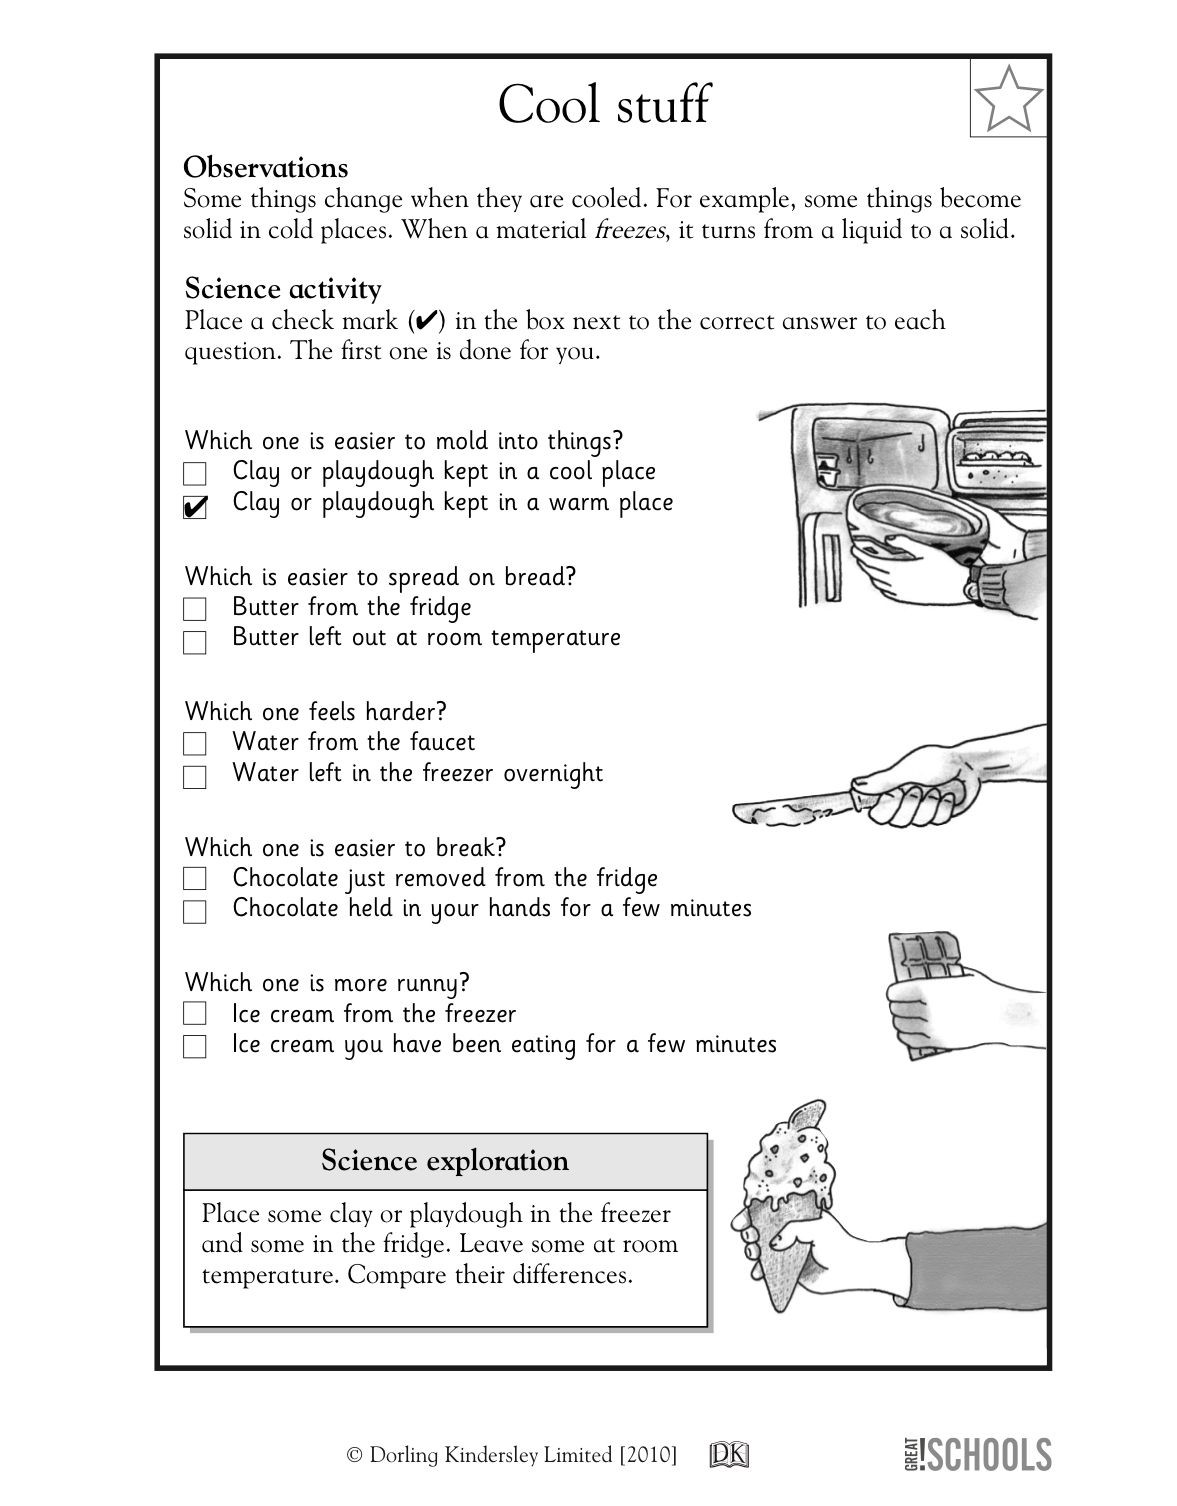 Second Grade Science Worksheets Free Pin by Lilsunflower On Coloring Pages